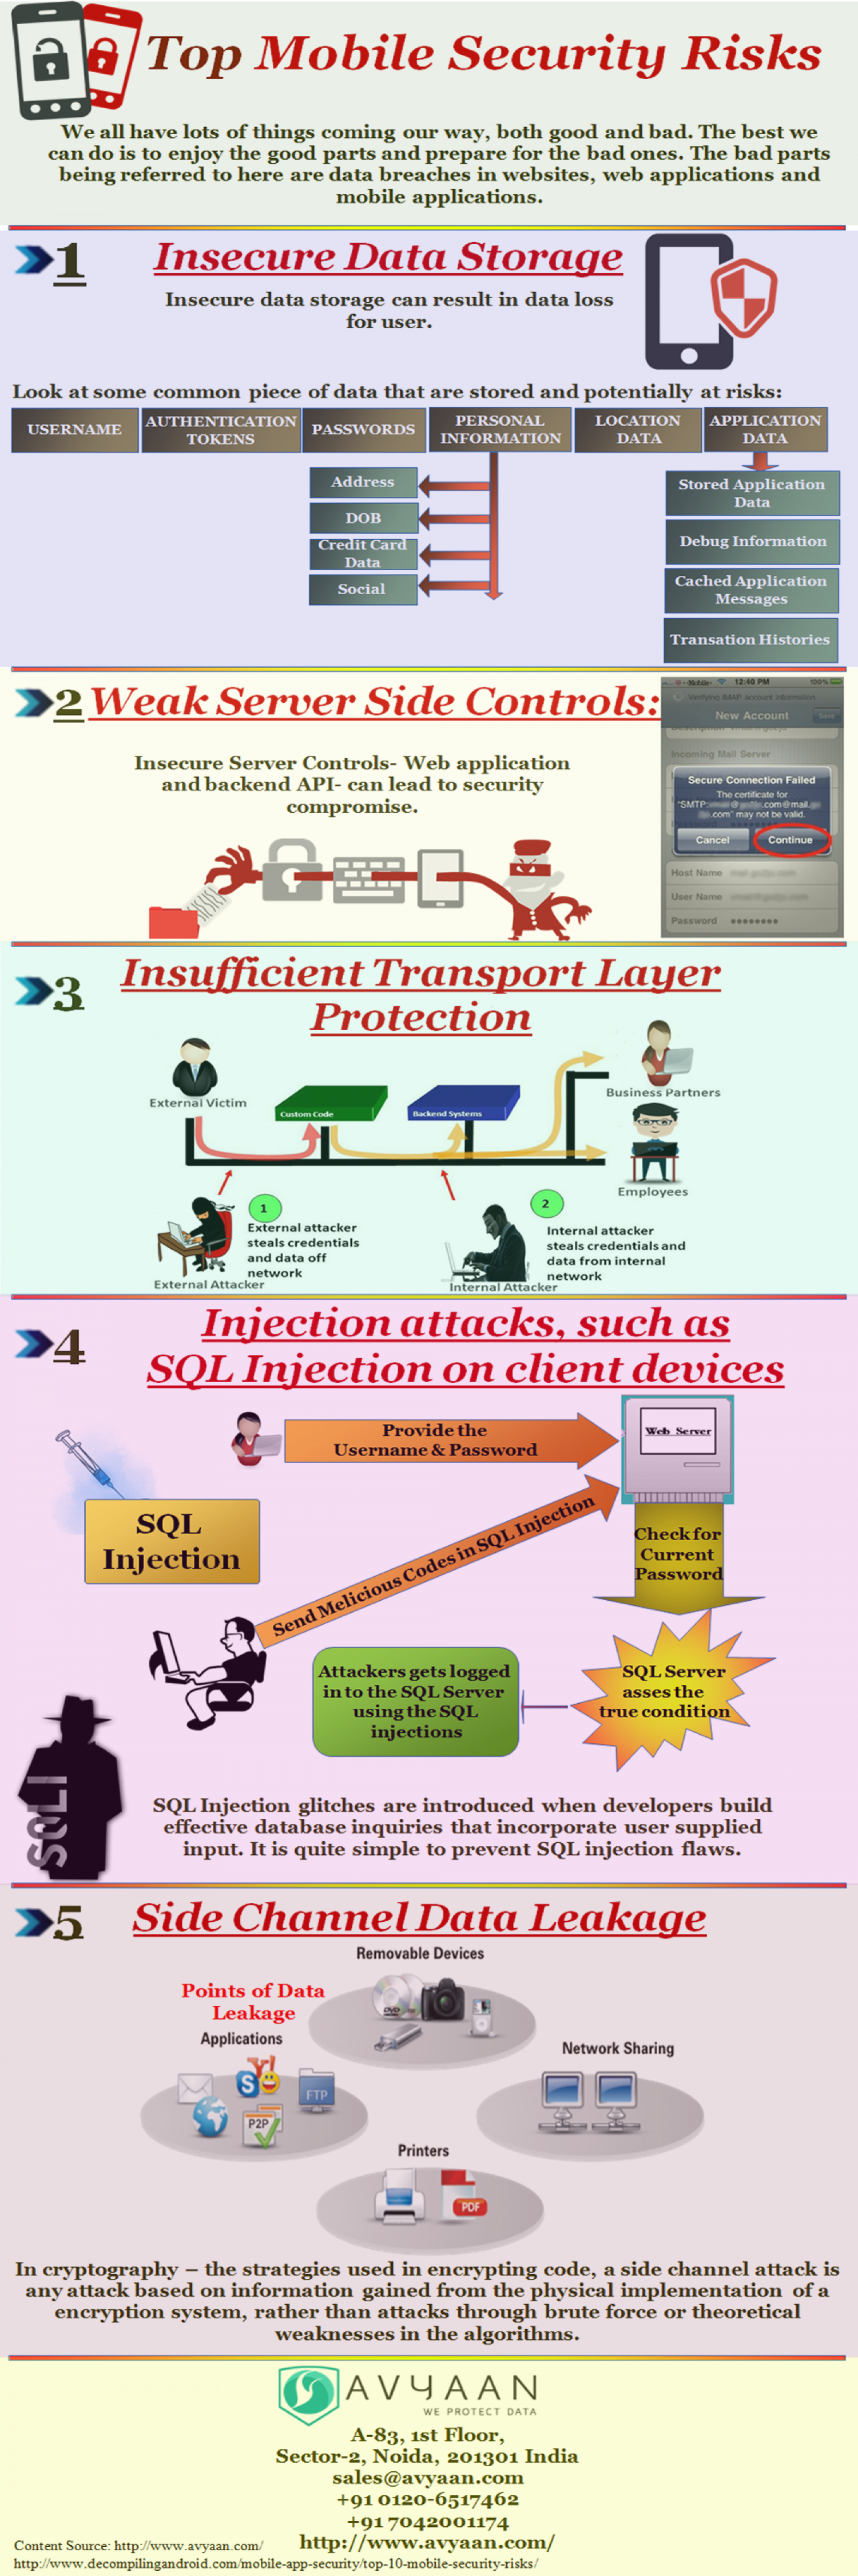 Security Concerns in Mobile Devices Infographic